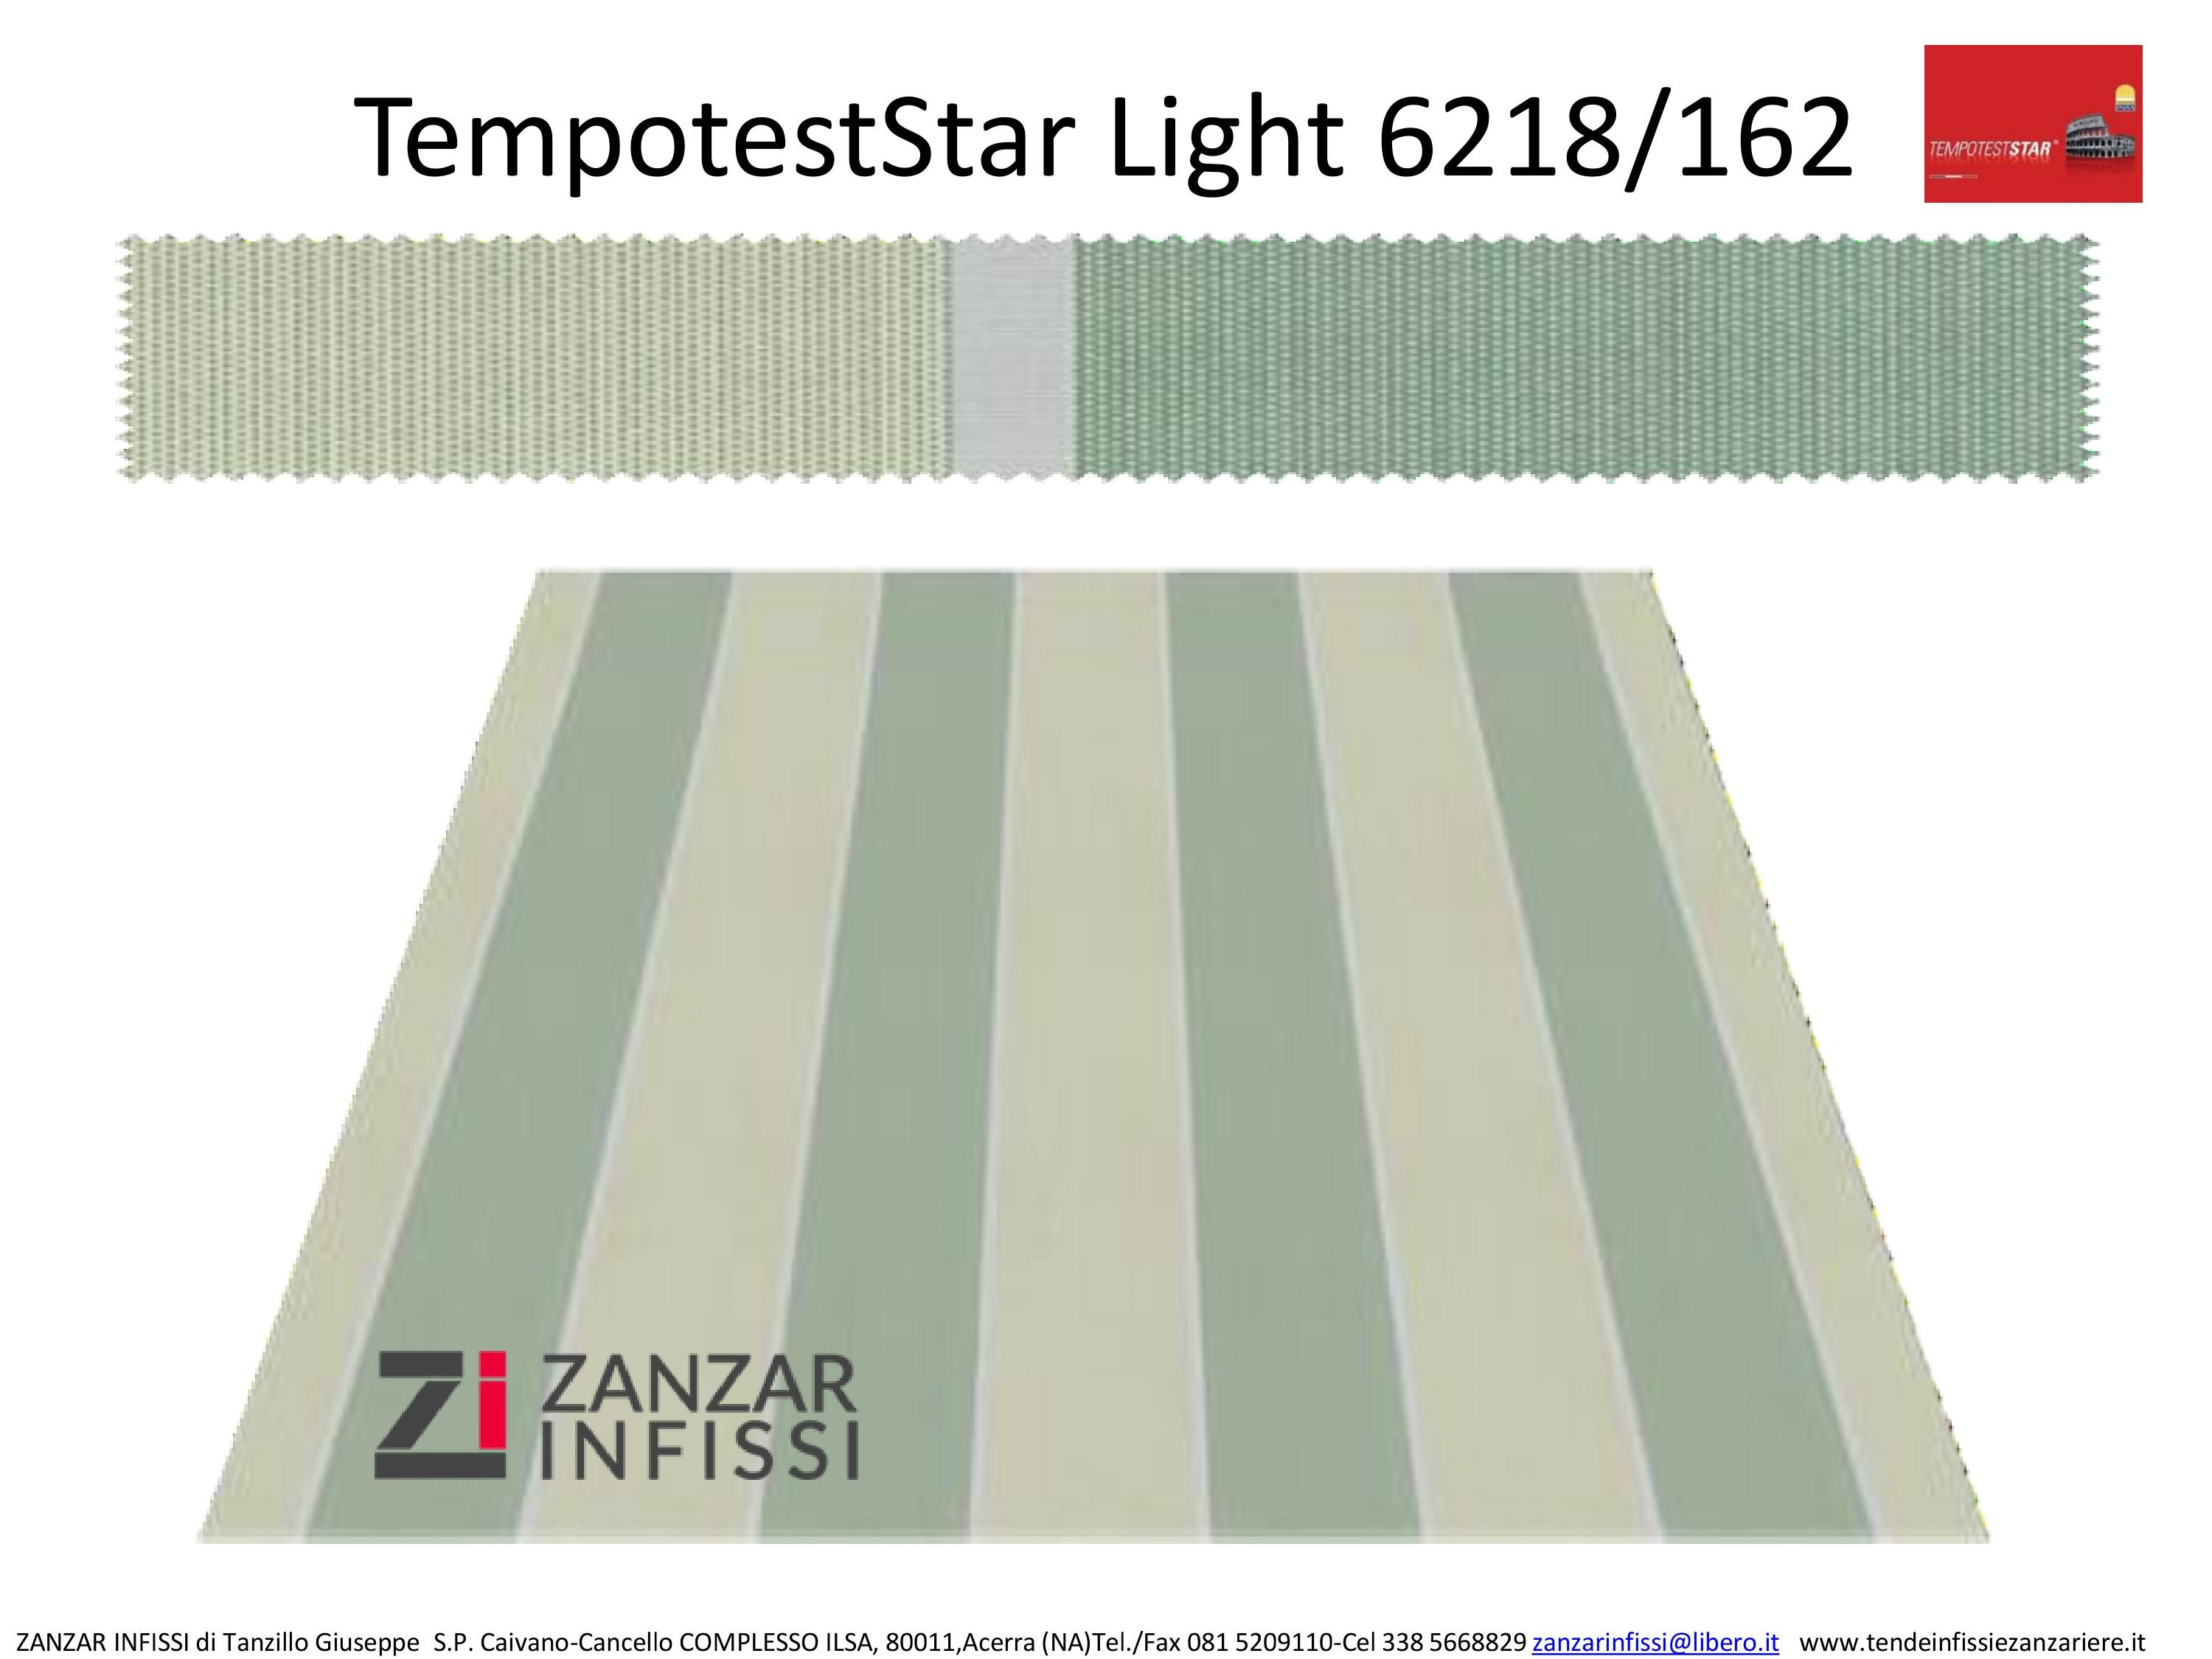 Tempotest star light 6218/162